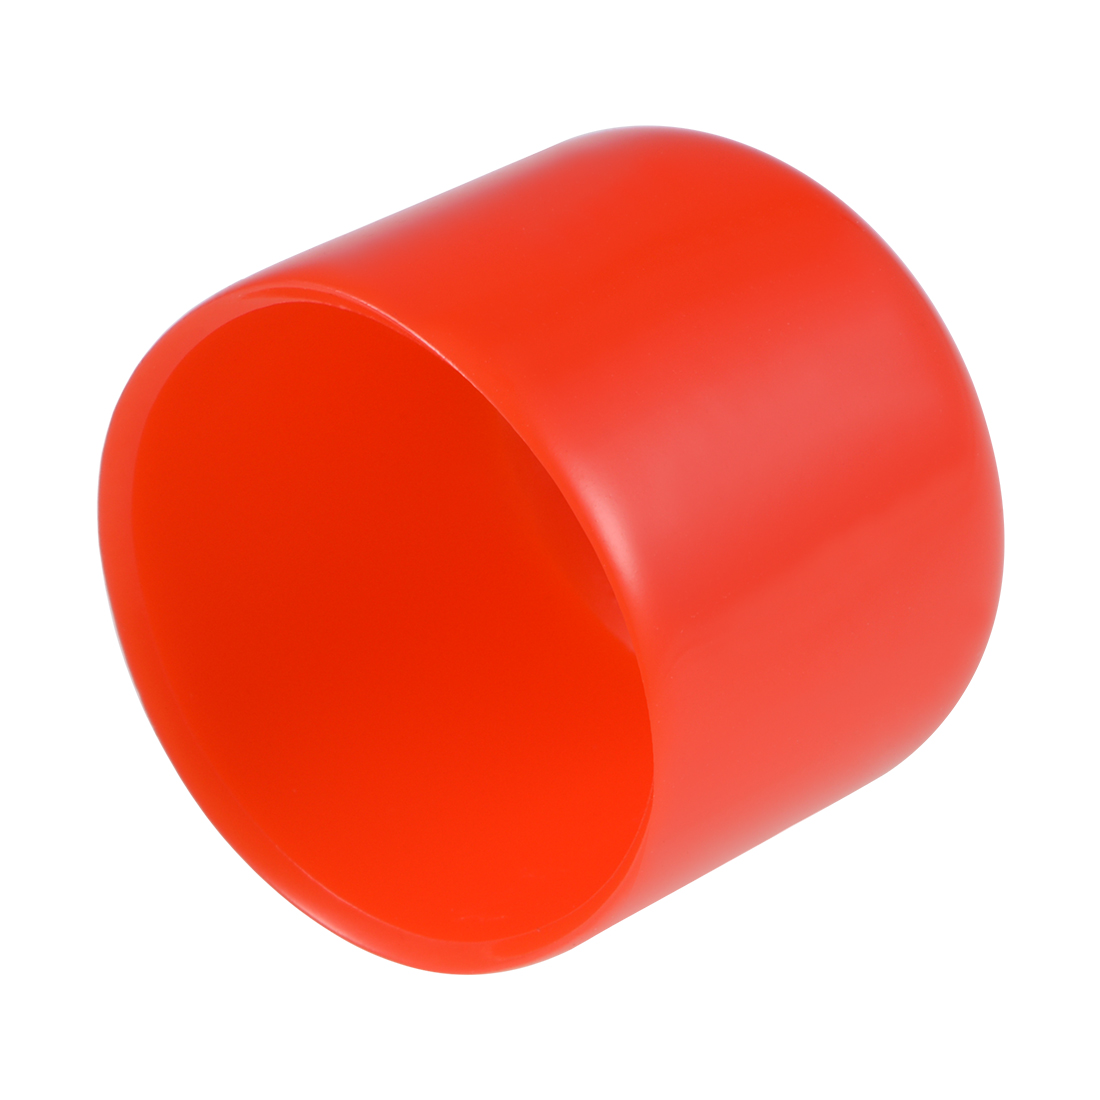 Screw Thread Protector, 26mm ID Round End Cap Cover Red Tube Caps 10pcs